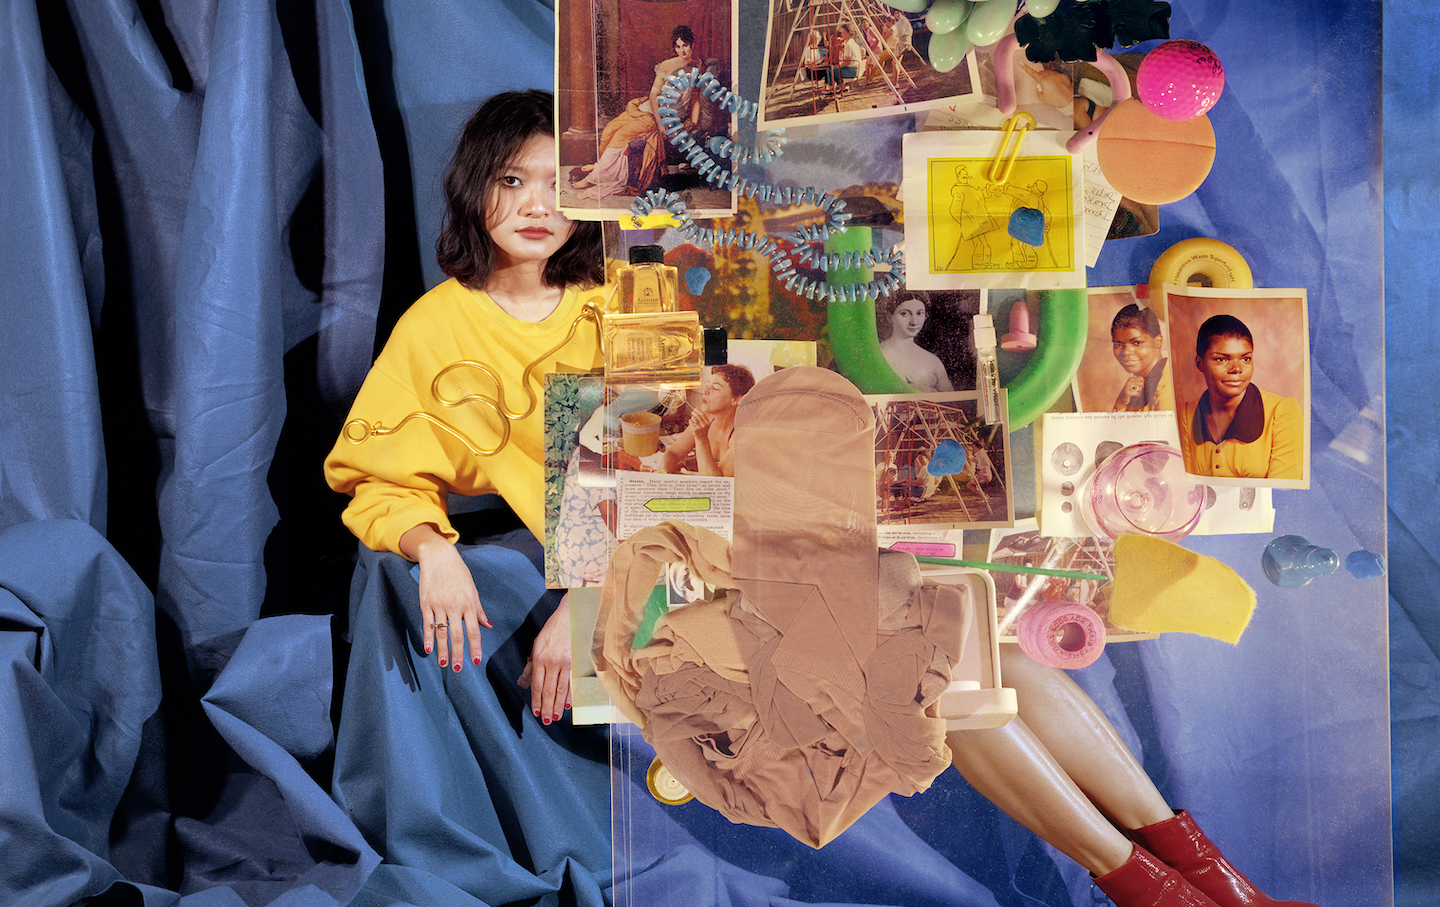 A woman sits behind a collage made of old photographs, pantyhose, perfume bottles, and other feminine items. Her legs, showing from behind the collage, are shiny and her feet are fitted with red boots. Her right arm, both hands, one with a ring on it, and half of her face including one eye, are visible.